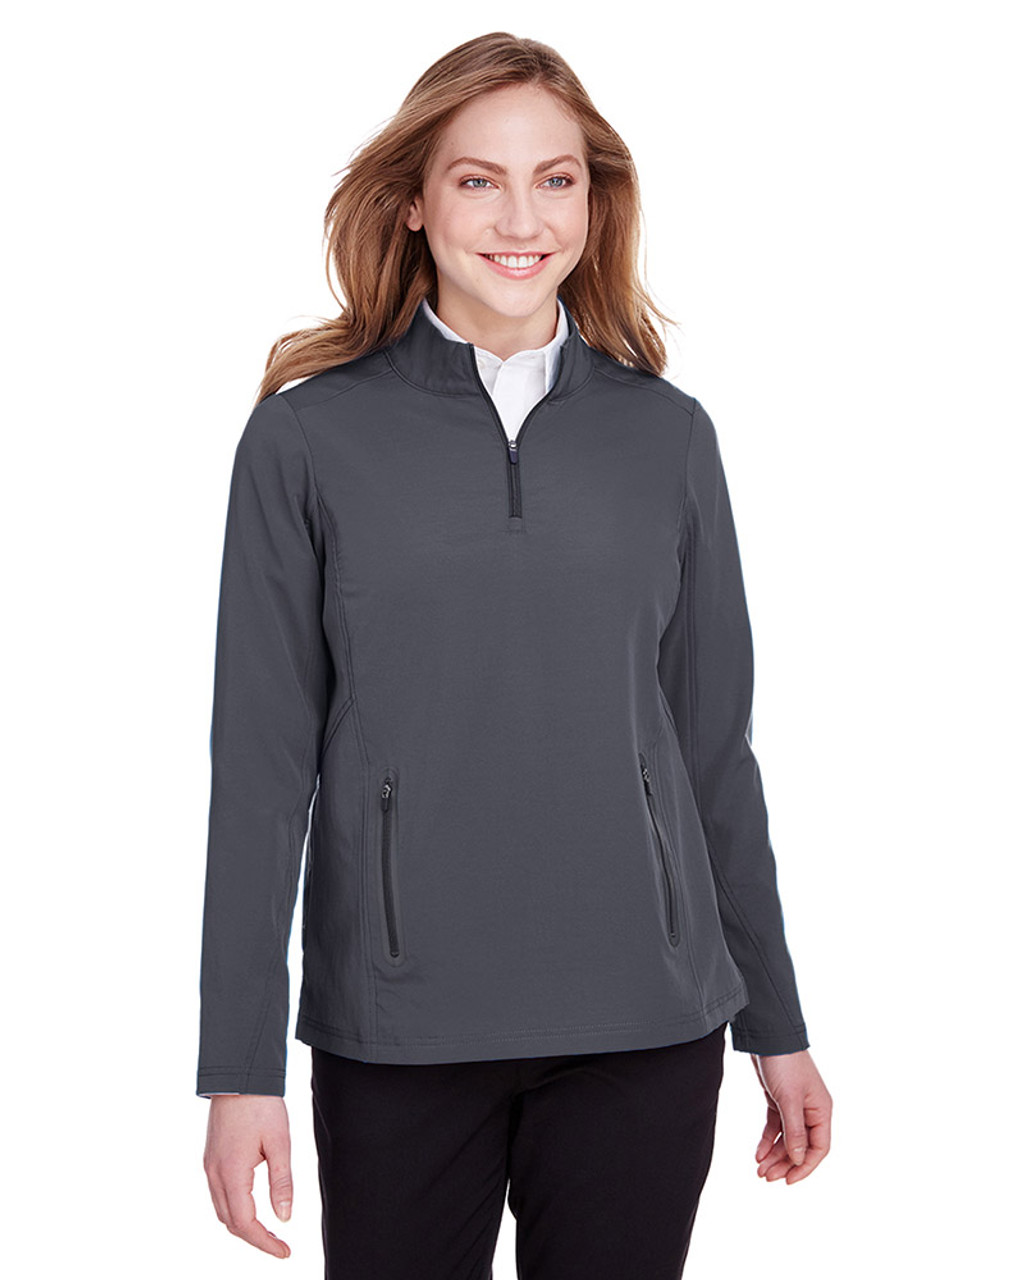 Carbon/Black - NE401W Ash City - North End Ladies' Quest Stretch Quarter-Zip Sweatshirt | Blankclothing.ca